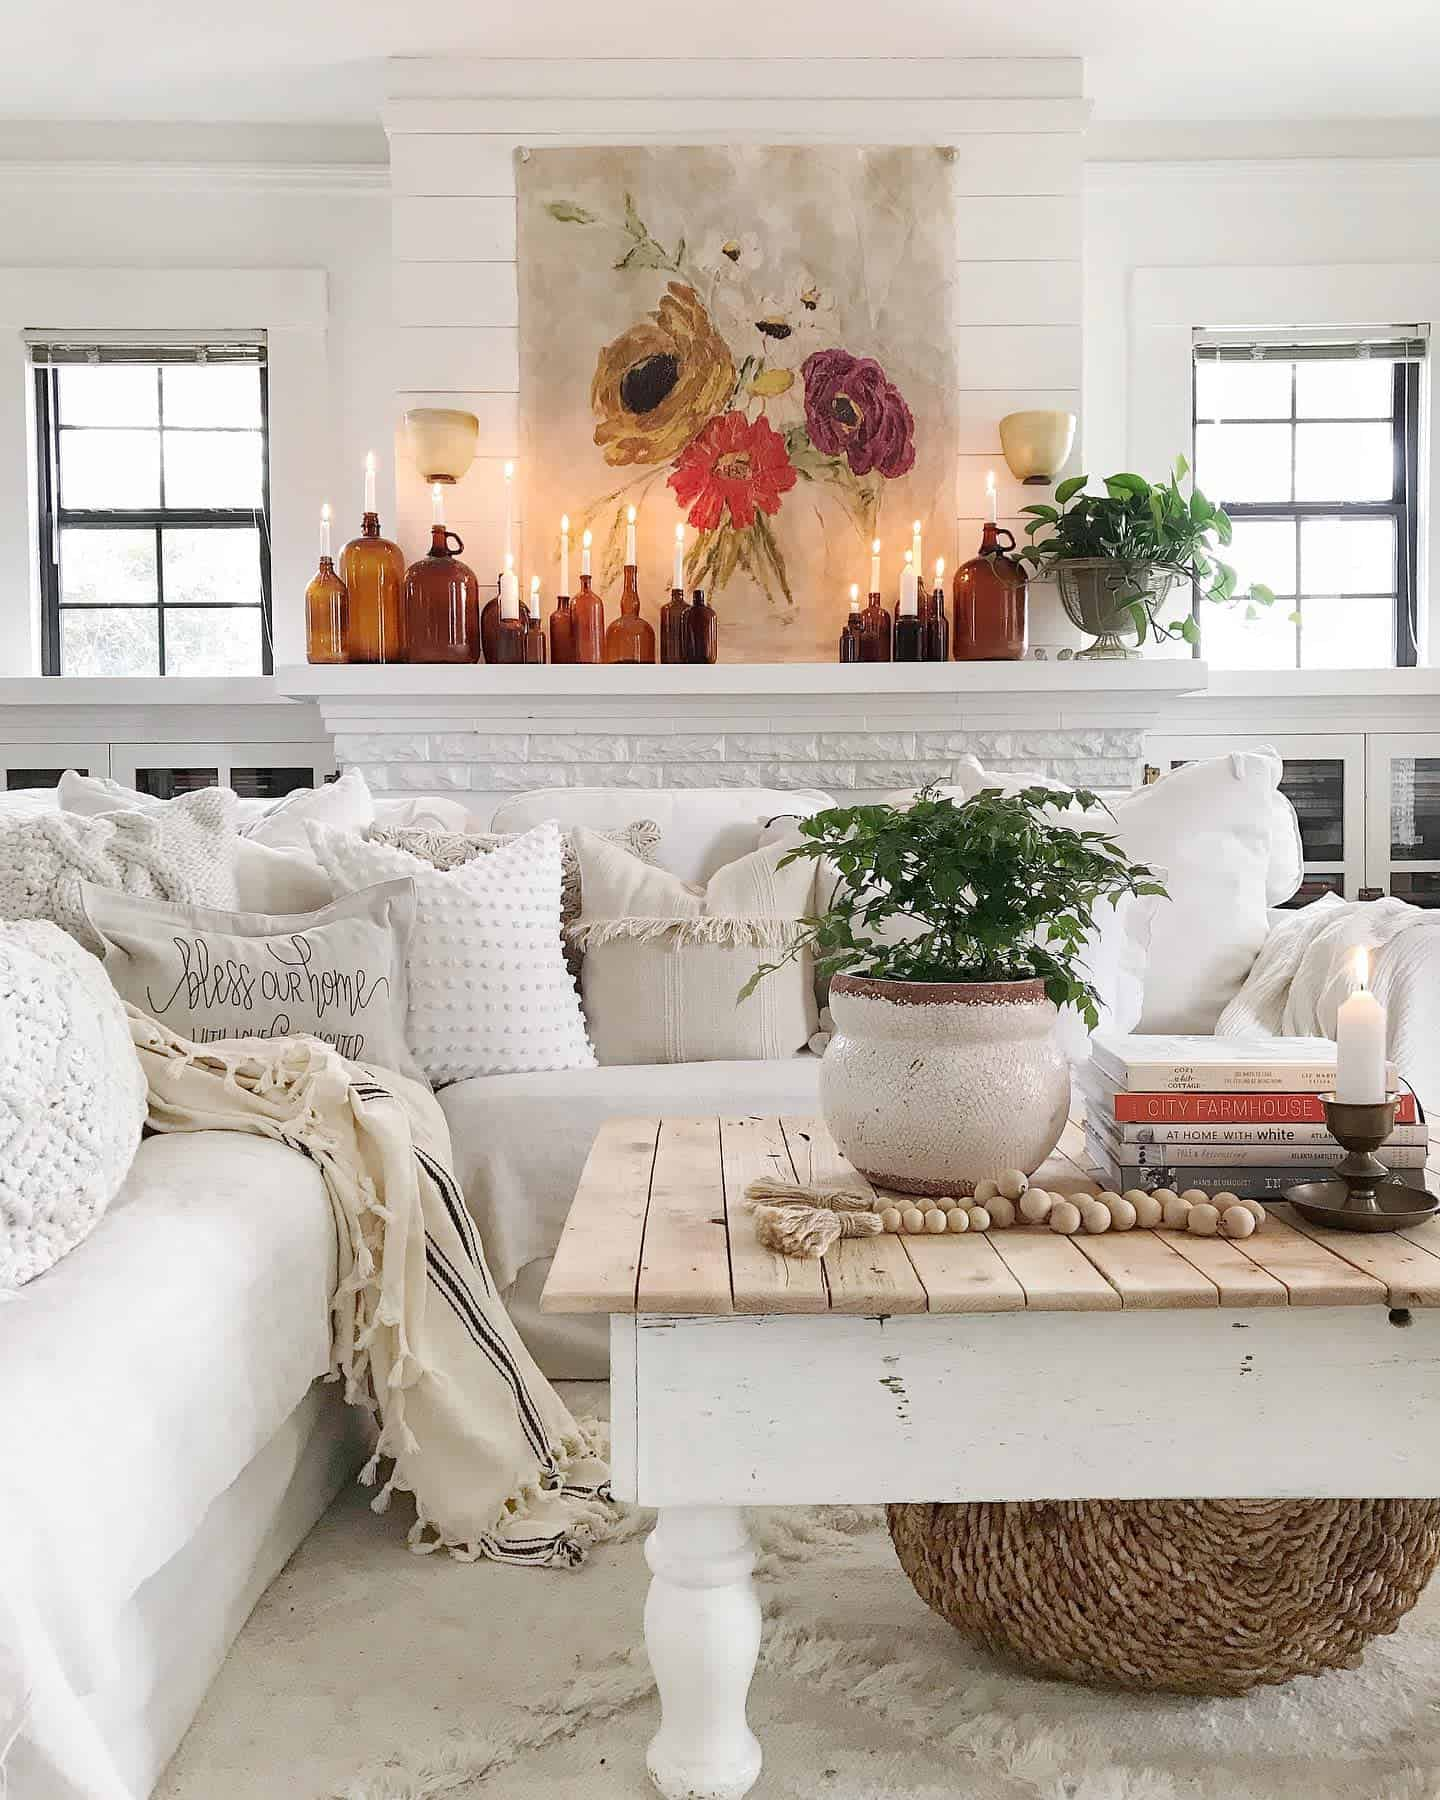 Rugs Pillows And Blankets Farmhouse Living Room Ideas Toni Marianna